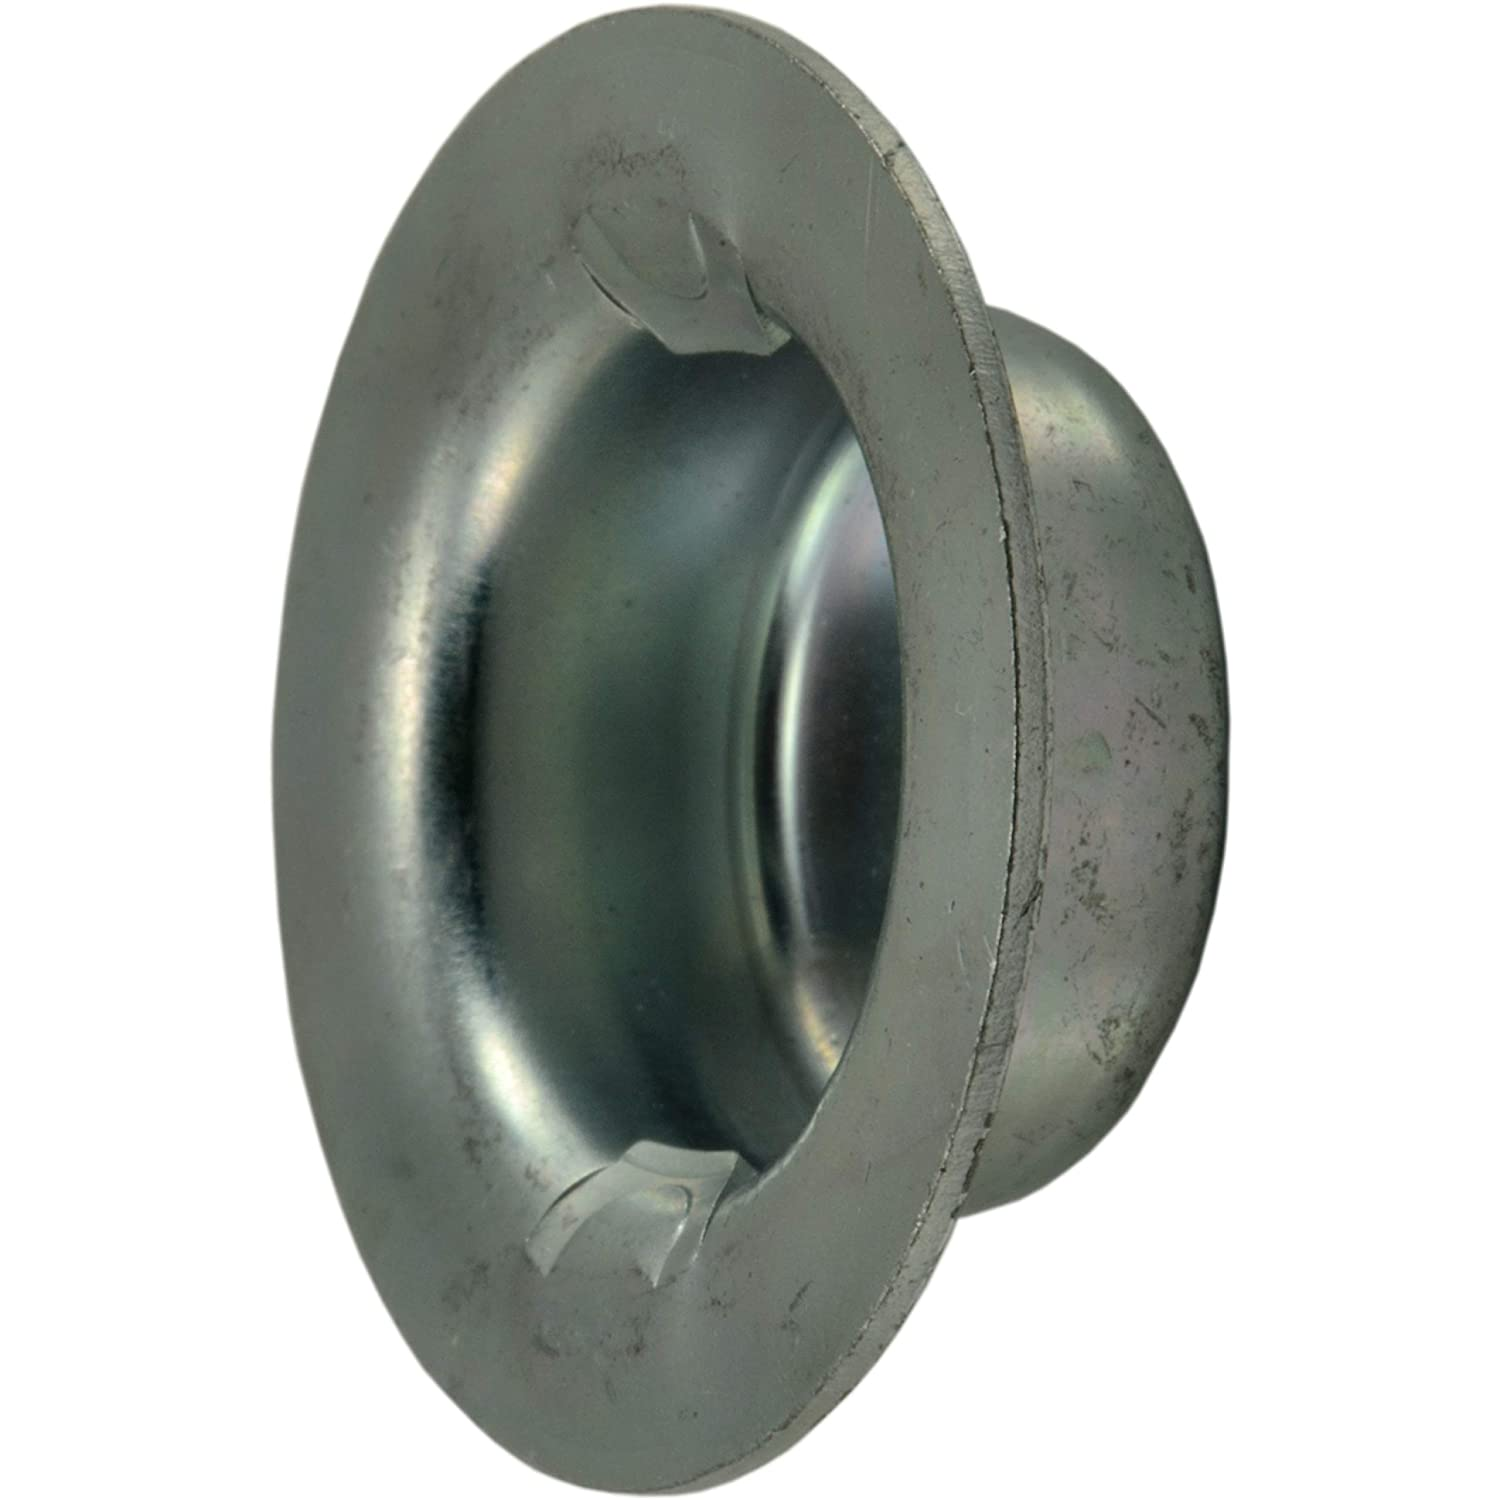 Hard-to-Find Fastener 014973325787 Washer Cap Push Nuts, 5/8-Inch